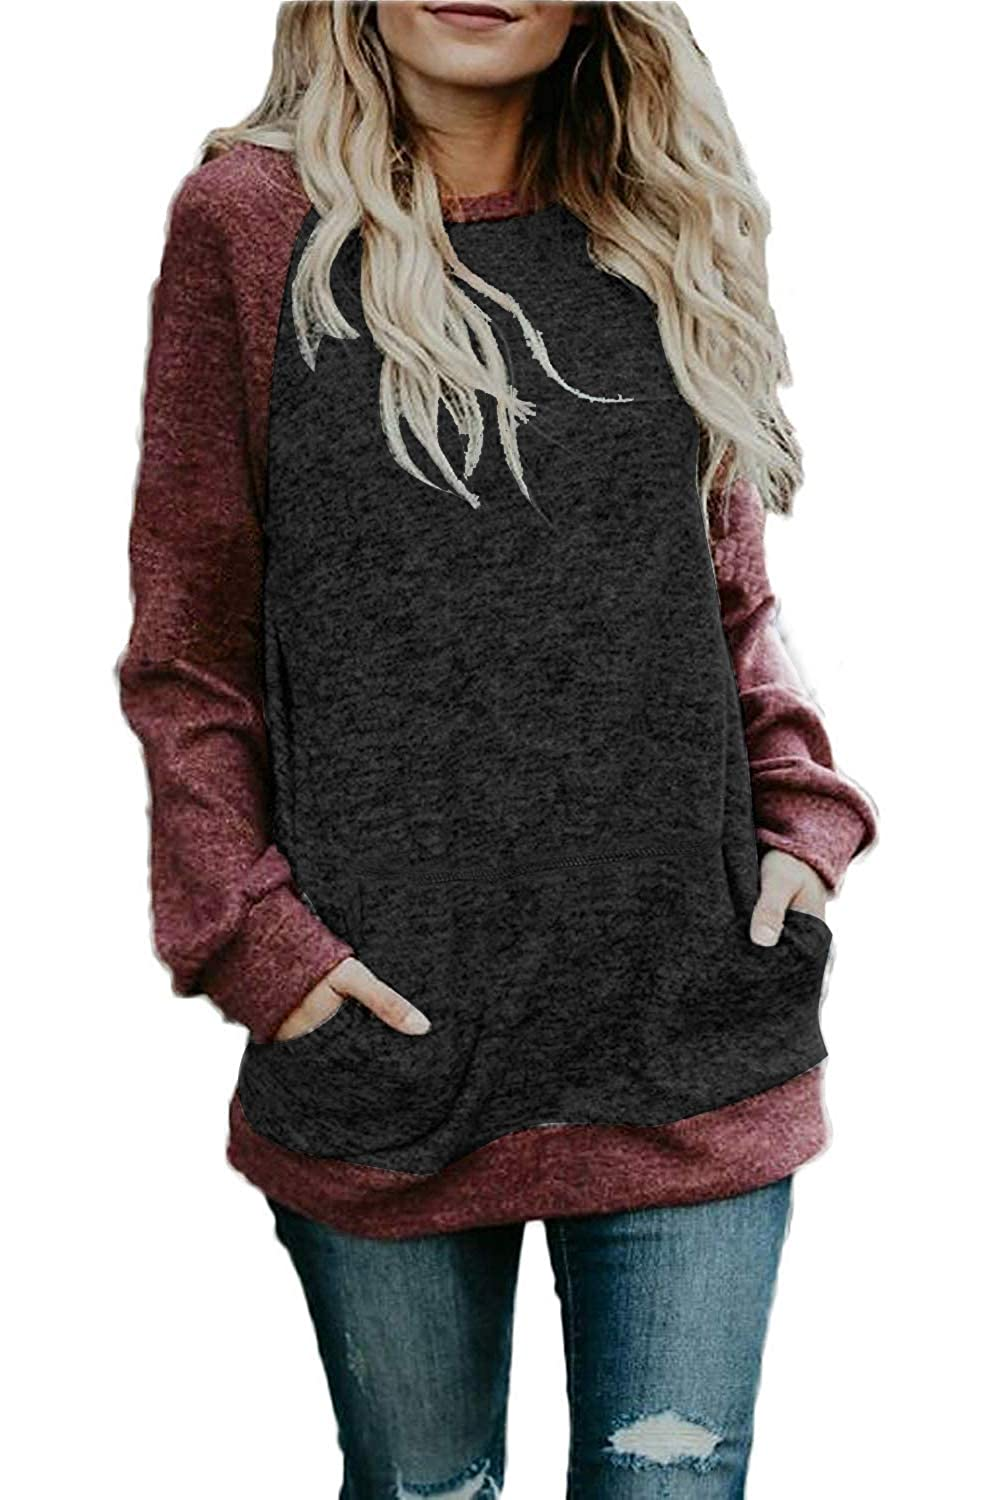 Dasbayla Women's Casual Long Sleeve Tops Crew Neck Blouse Sweatshirts with Pockets Colour Block DAS-2061